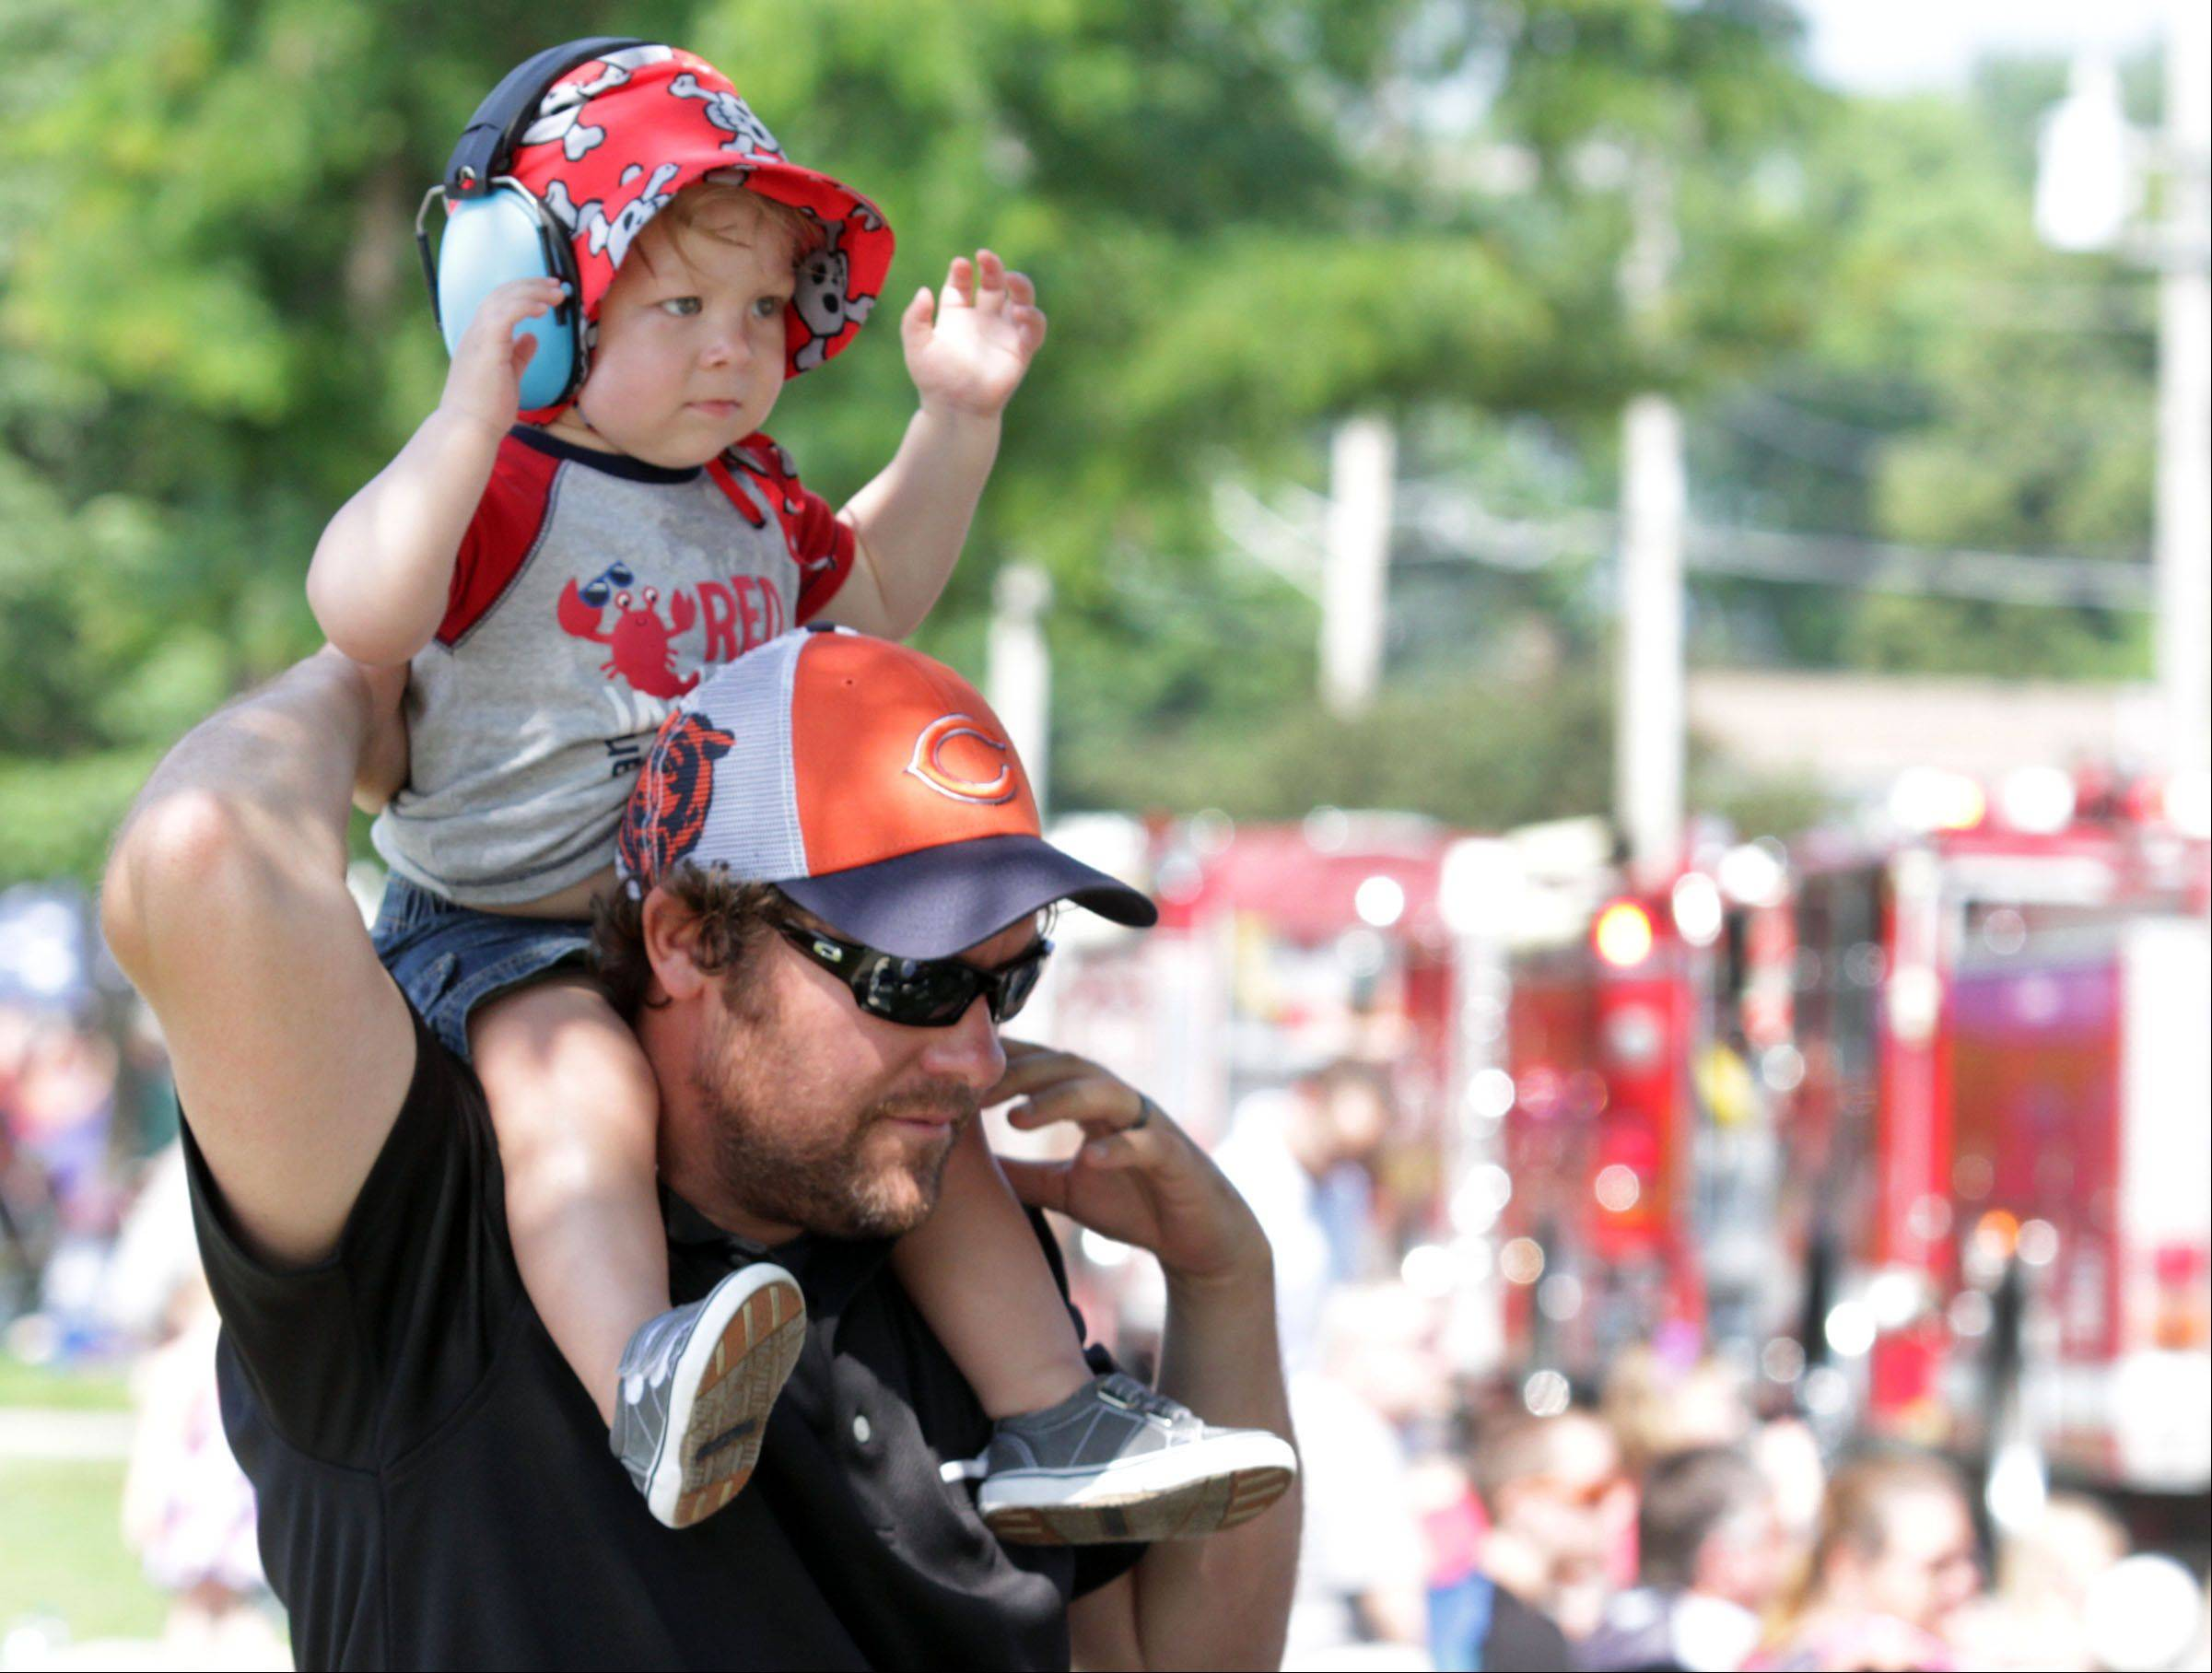 Wearing ear protection, Brayden McNelis, 1, sits on dad Jeremy's shoulders and doesn't mind the loud firetruck sirens in Saturday's Celebrate Fox Lake parade on Grand Avenue.